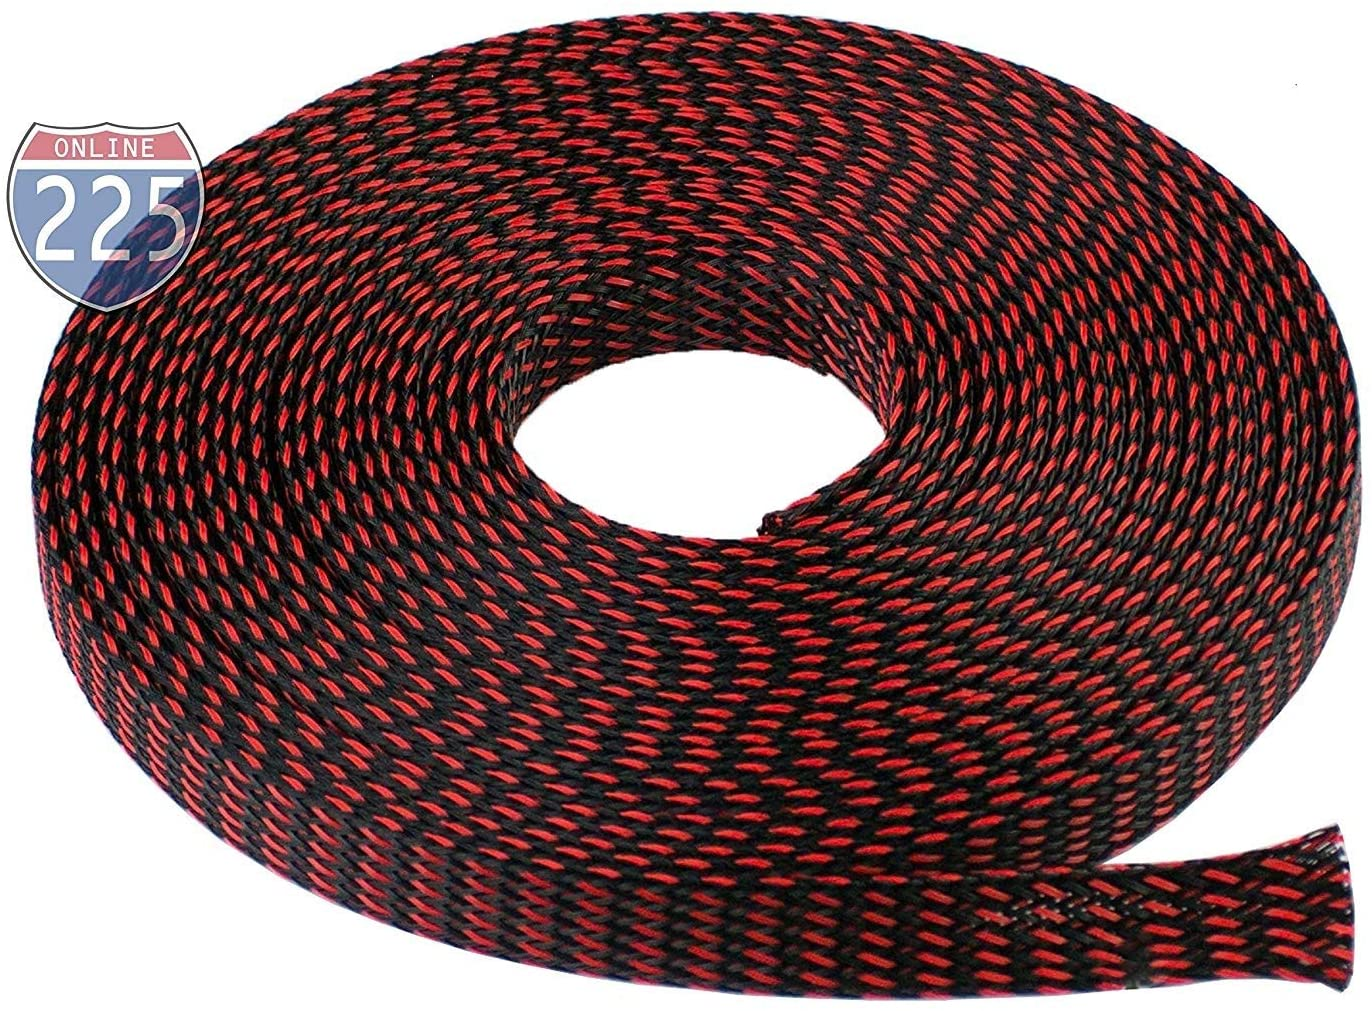 225FWY All Sizes & Colors 5 FT - 100 FT Expandable Cable Sleeving Braided Tubing LOT